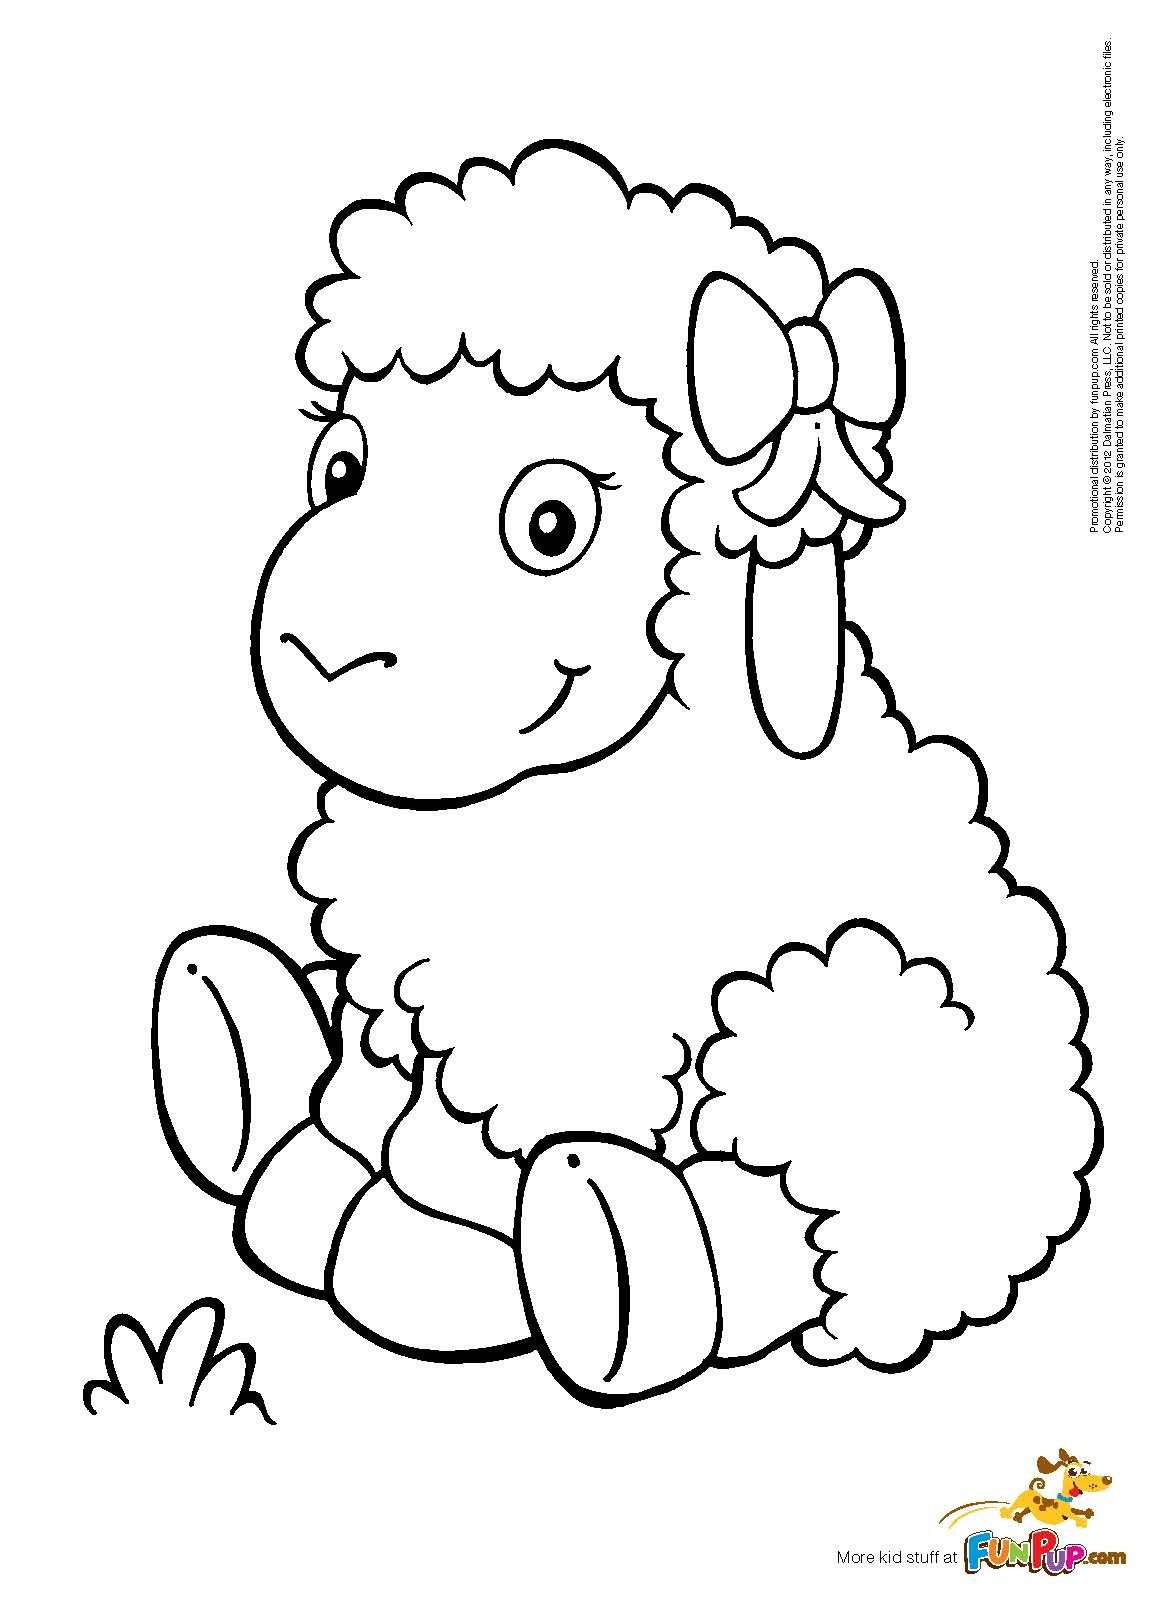 Happy Sheep Coloring Page | Sewing | Pinterest | Oveja, Dibujo y ...